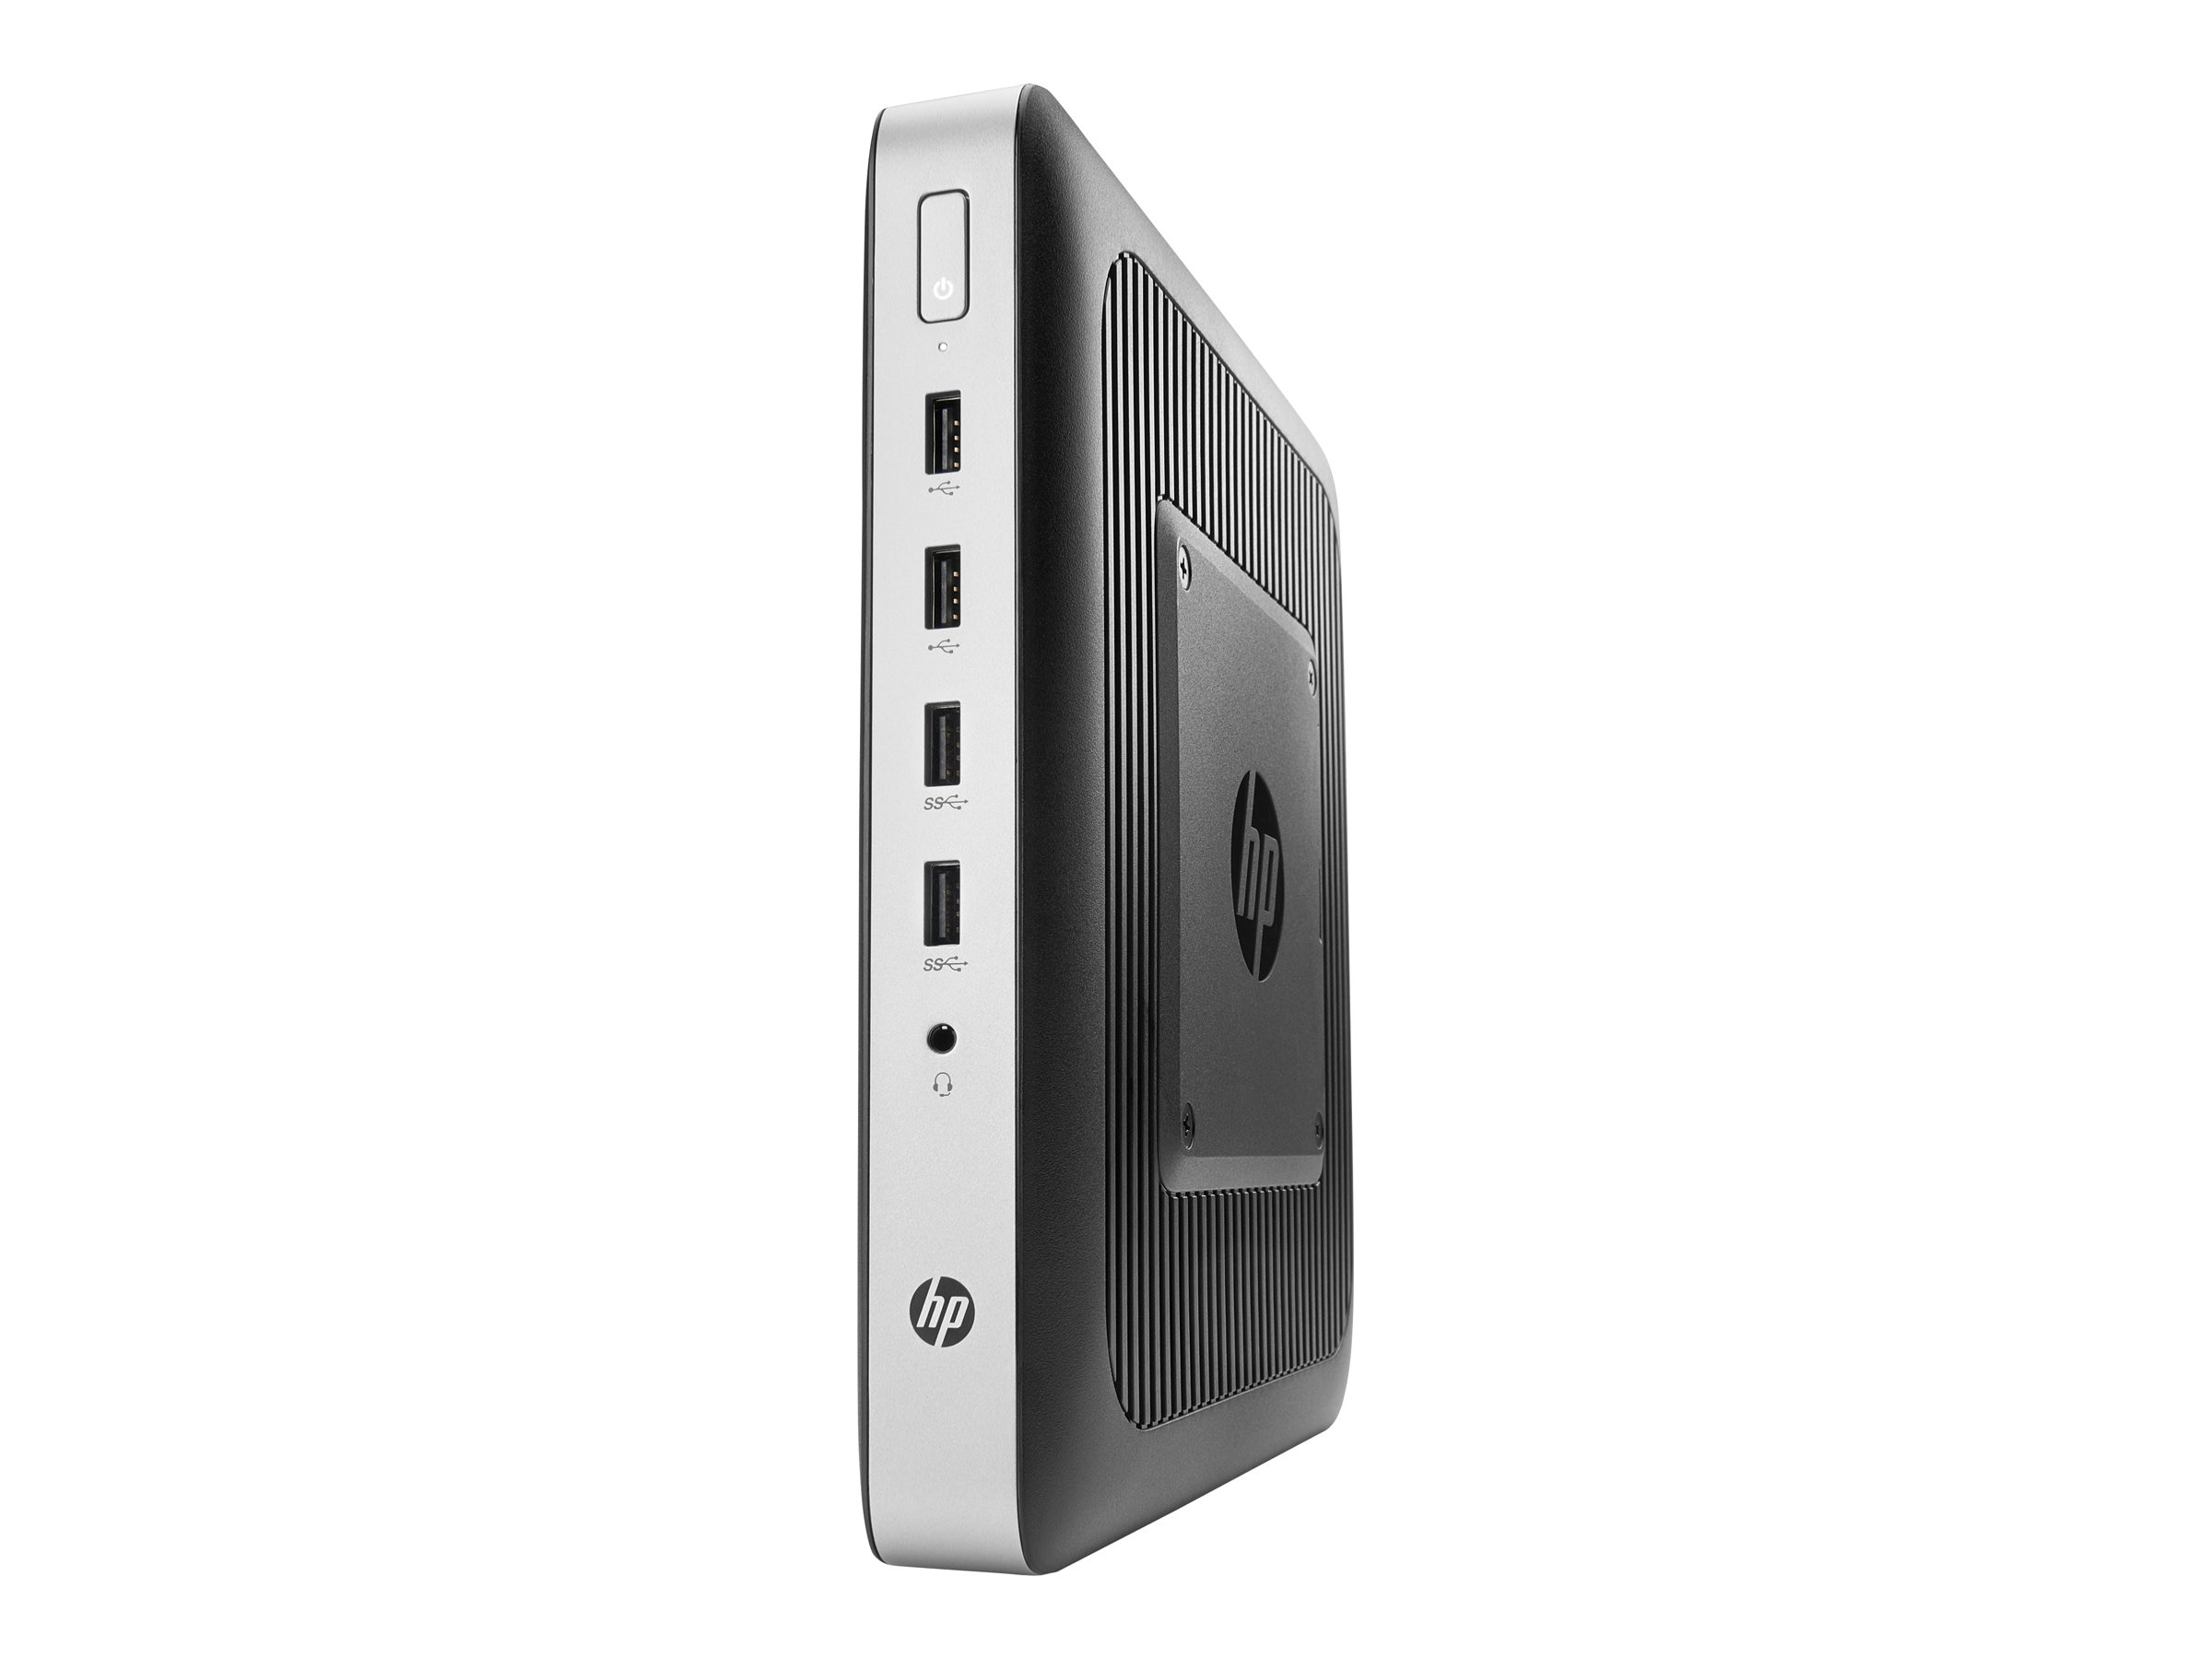 HP t630 Thin Client AMD GX-420GI 2.0GHz 4GB 16GB Flash R6E GbE VGA WES7E